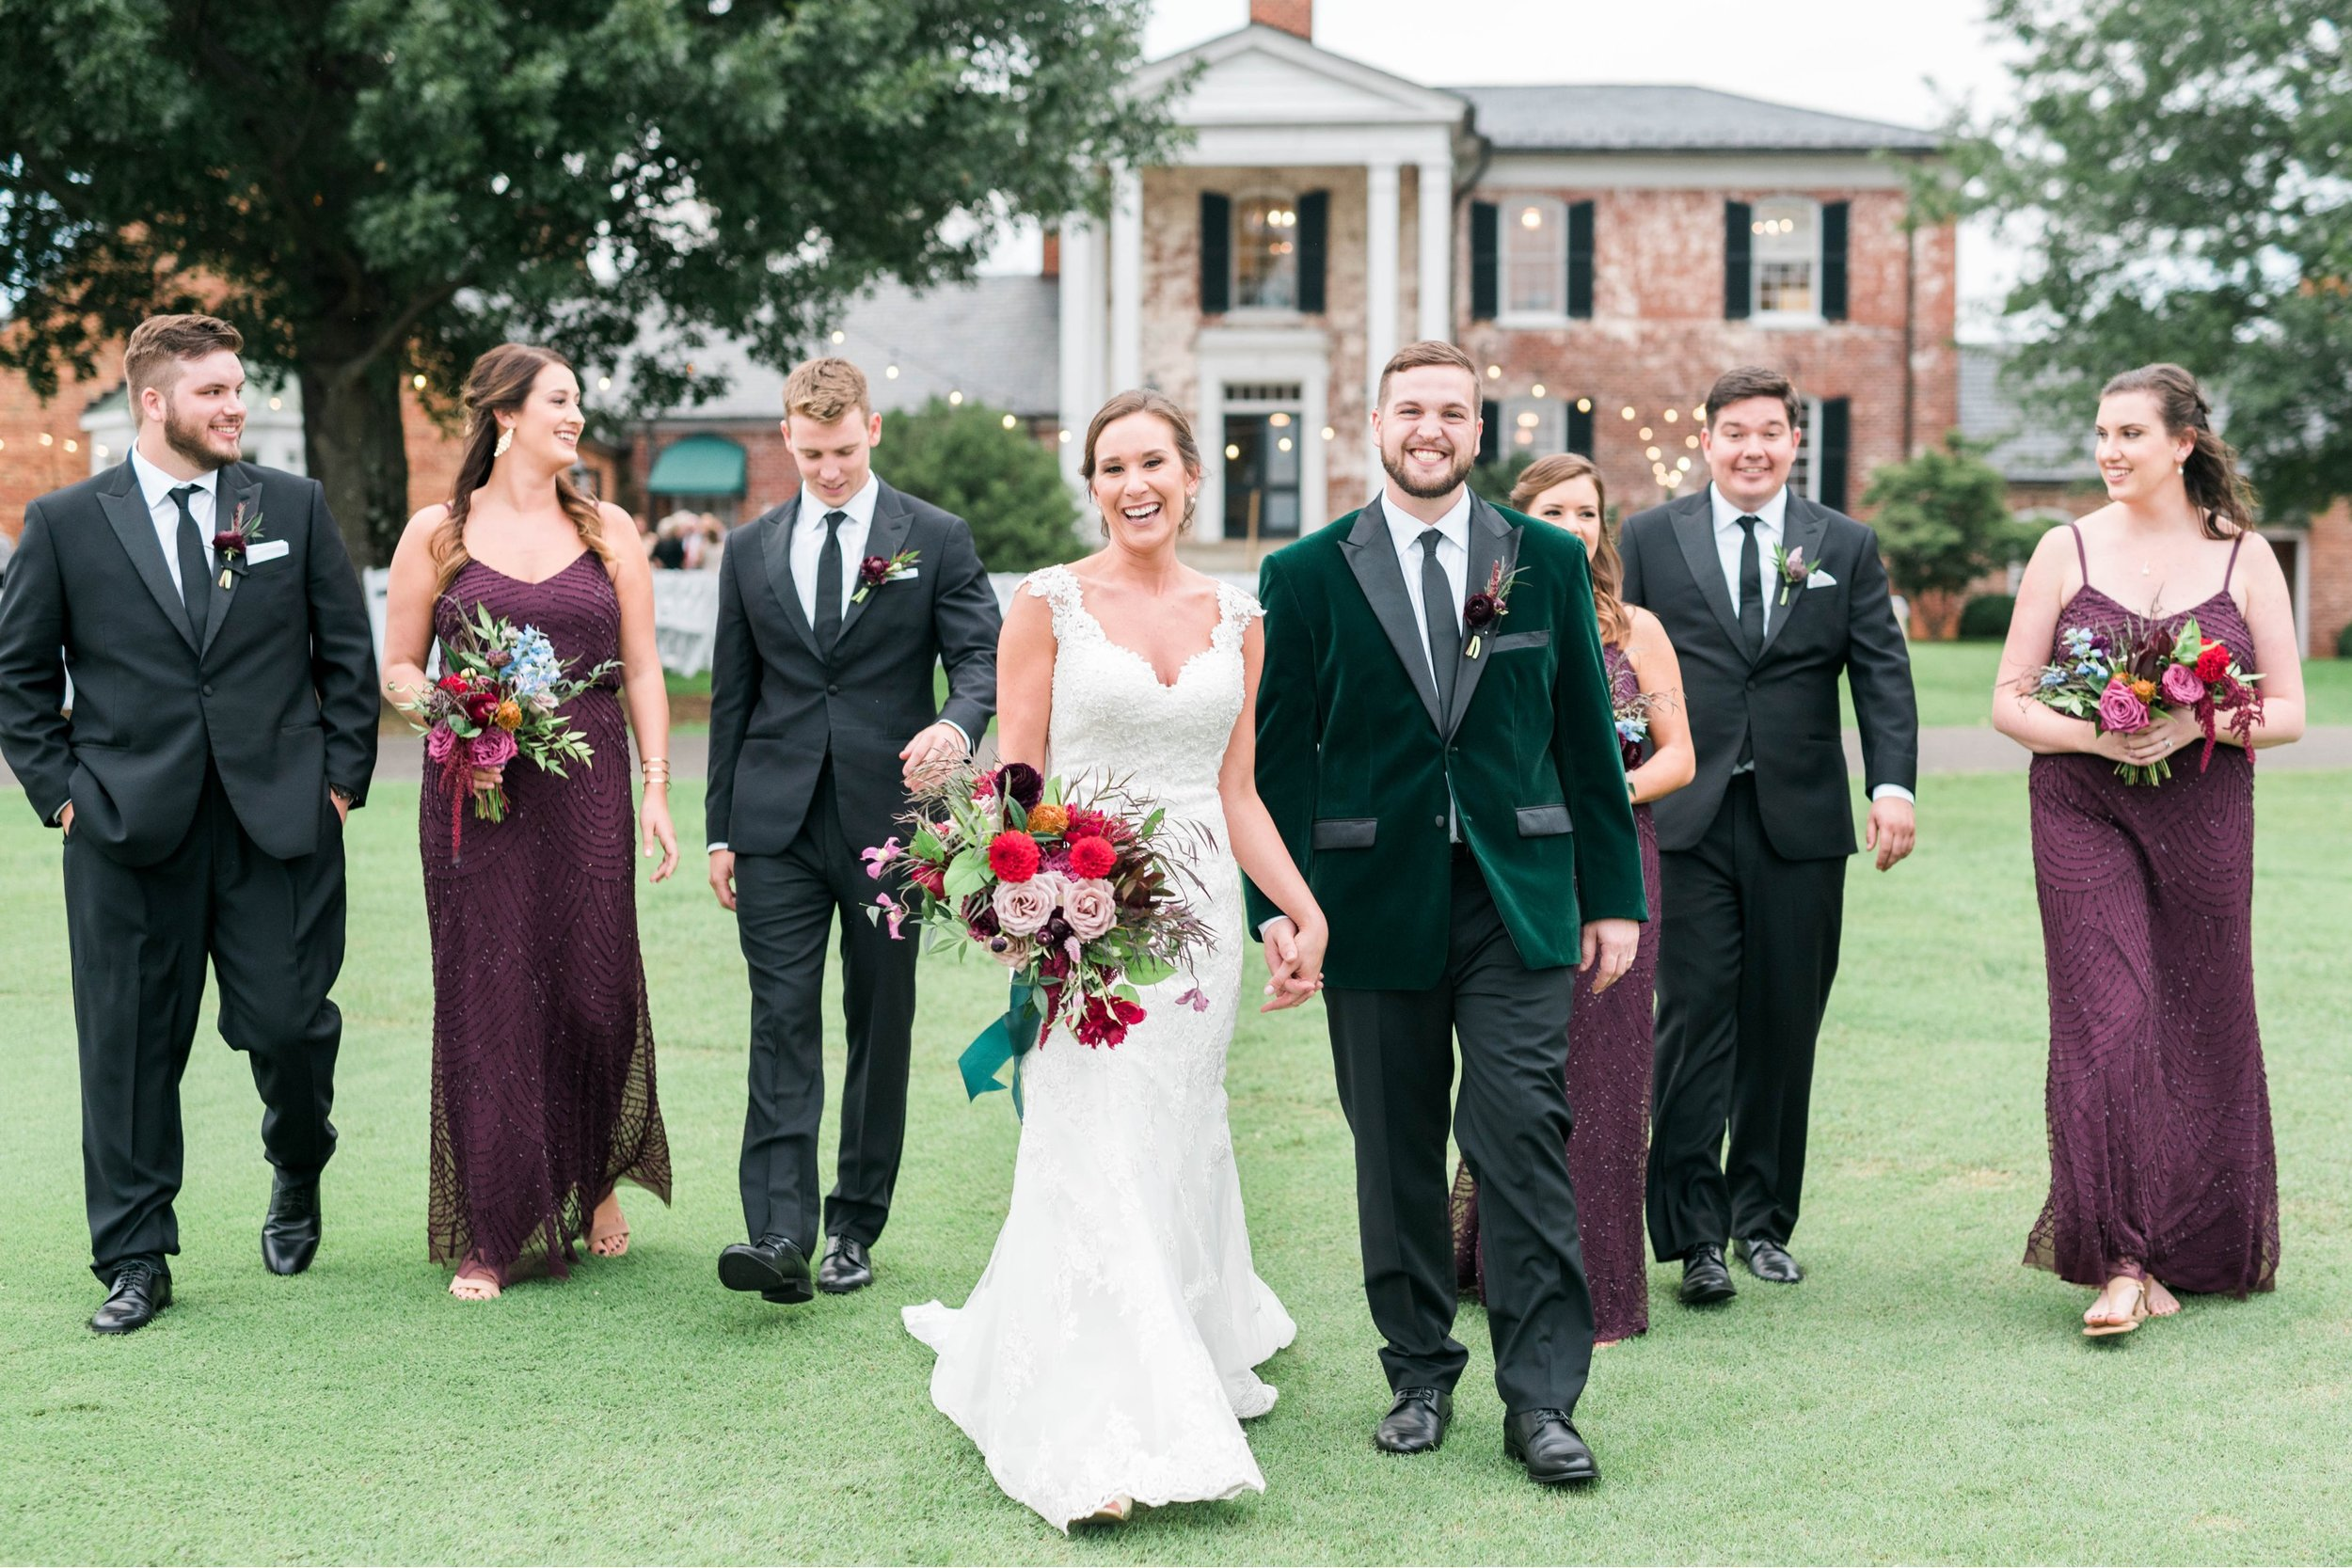 Gordan+Lauren_BoonsboroCountryClubWedding_Virginiaweddingphotographer_LynchburgVi 15.jpg